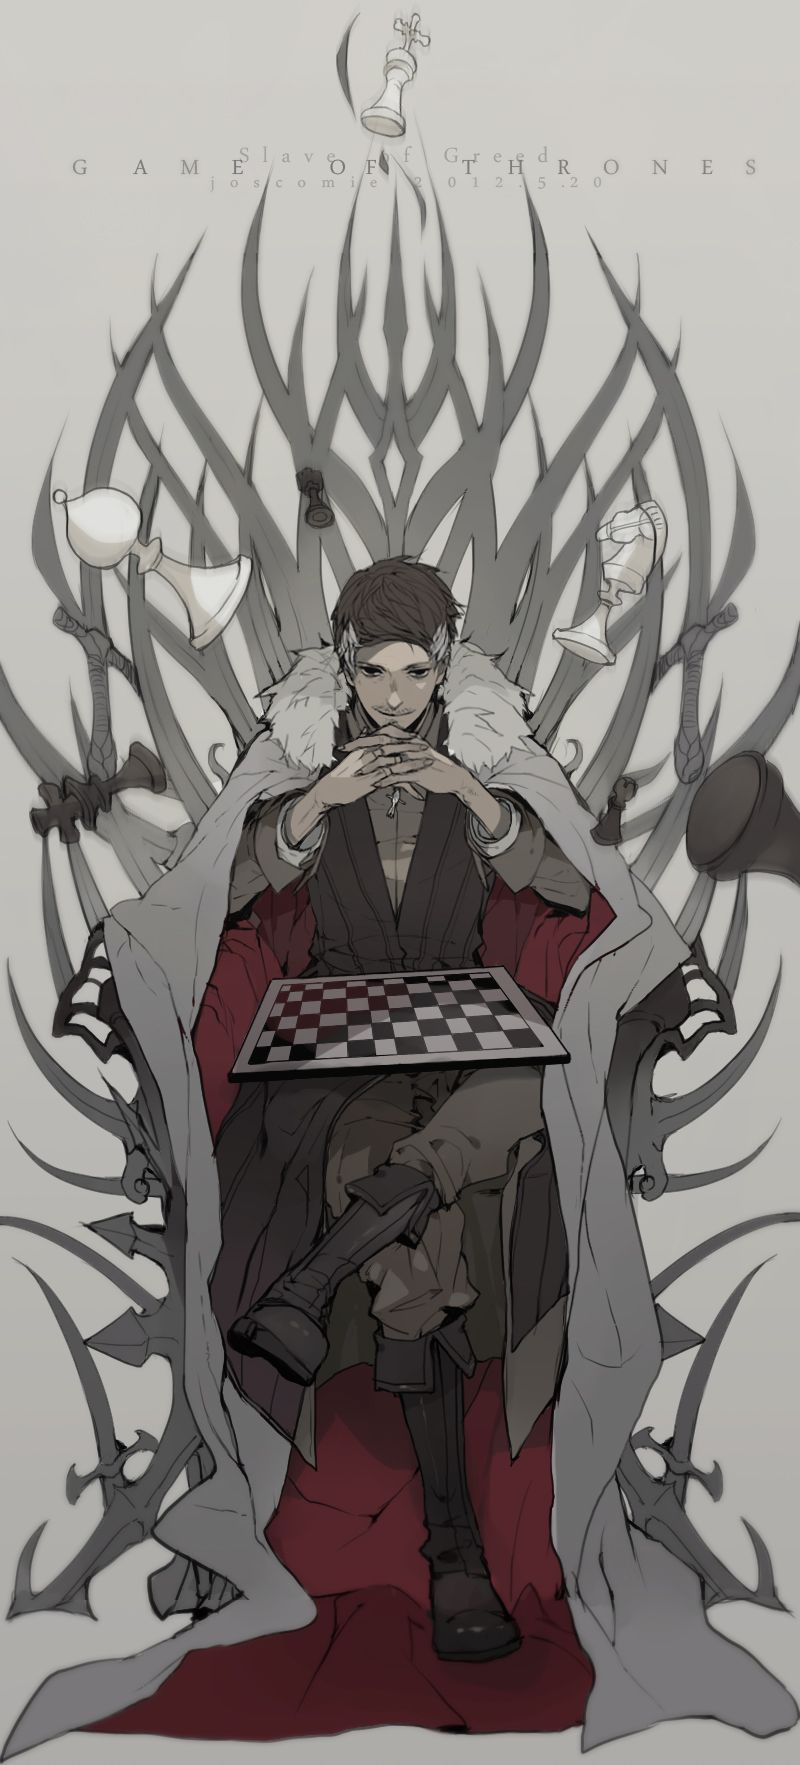 Little Fingers Game Of Throne Baelish Art Game Of Thrones Fans Anime